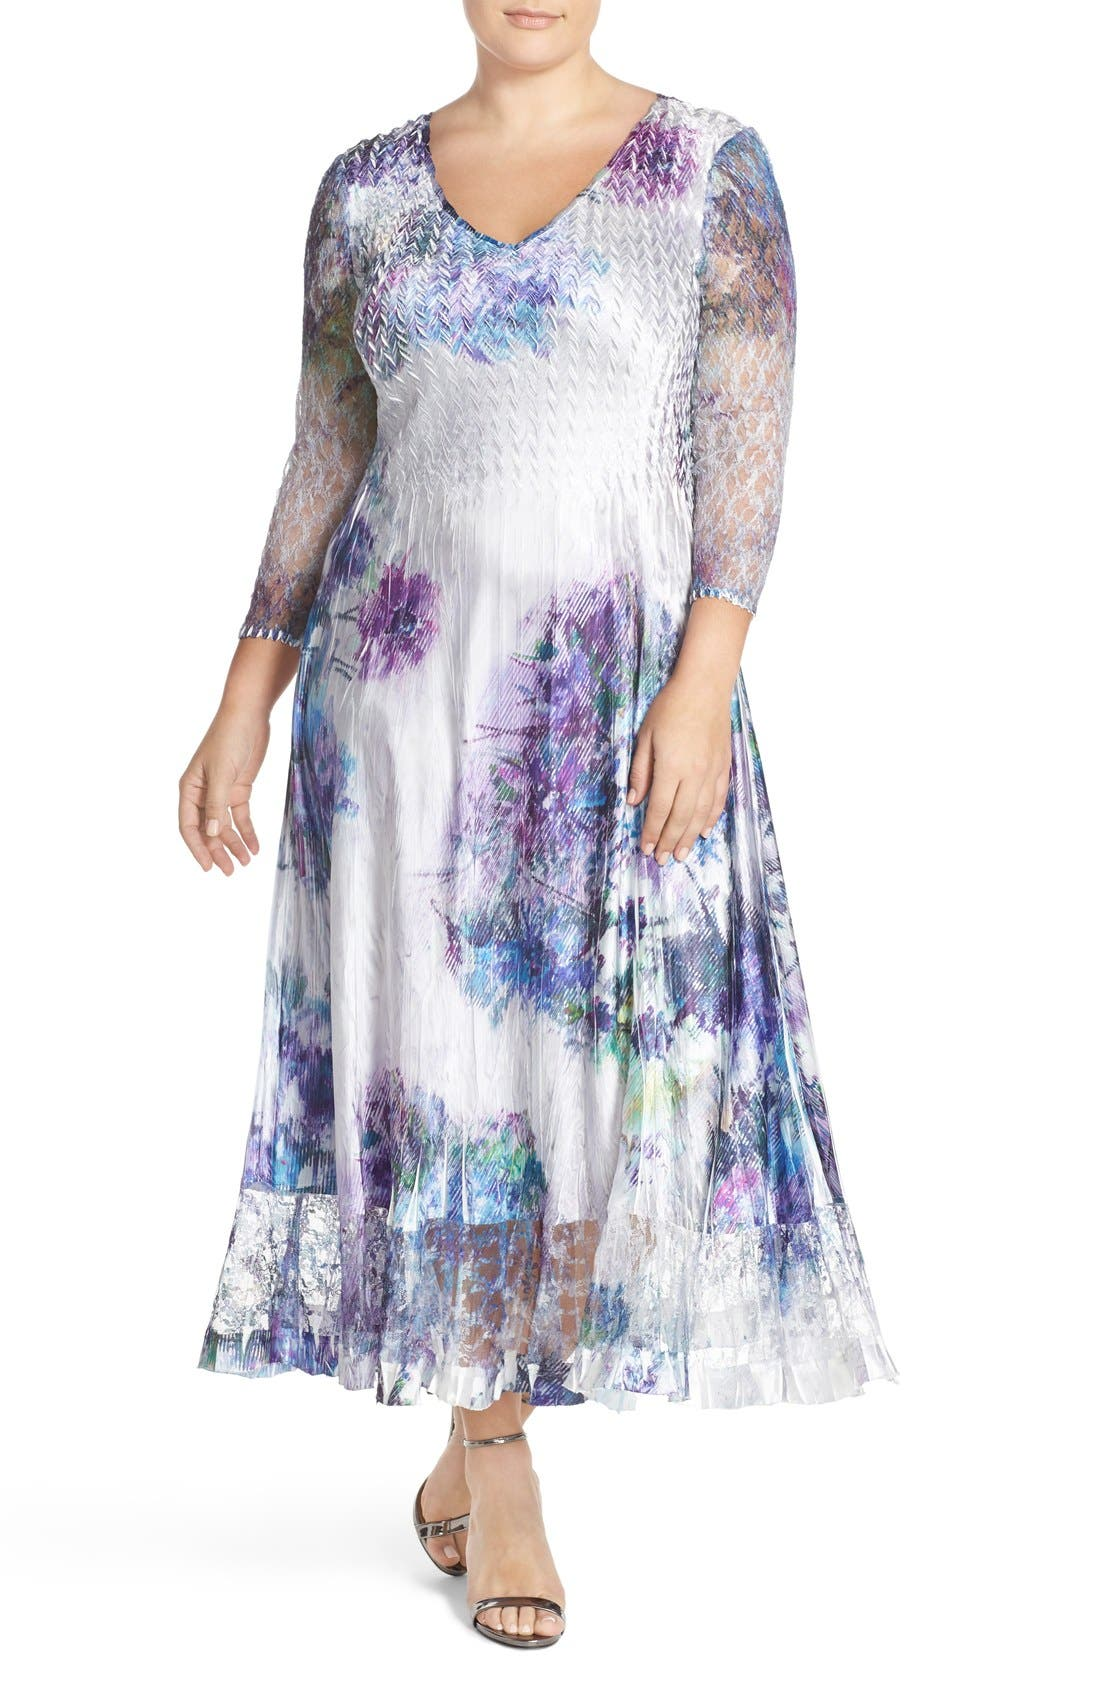 Alternate Image 1 Selected - Komarov Print Charmeuse & Chiffon A-Line Long Dress (Plus Size)